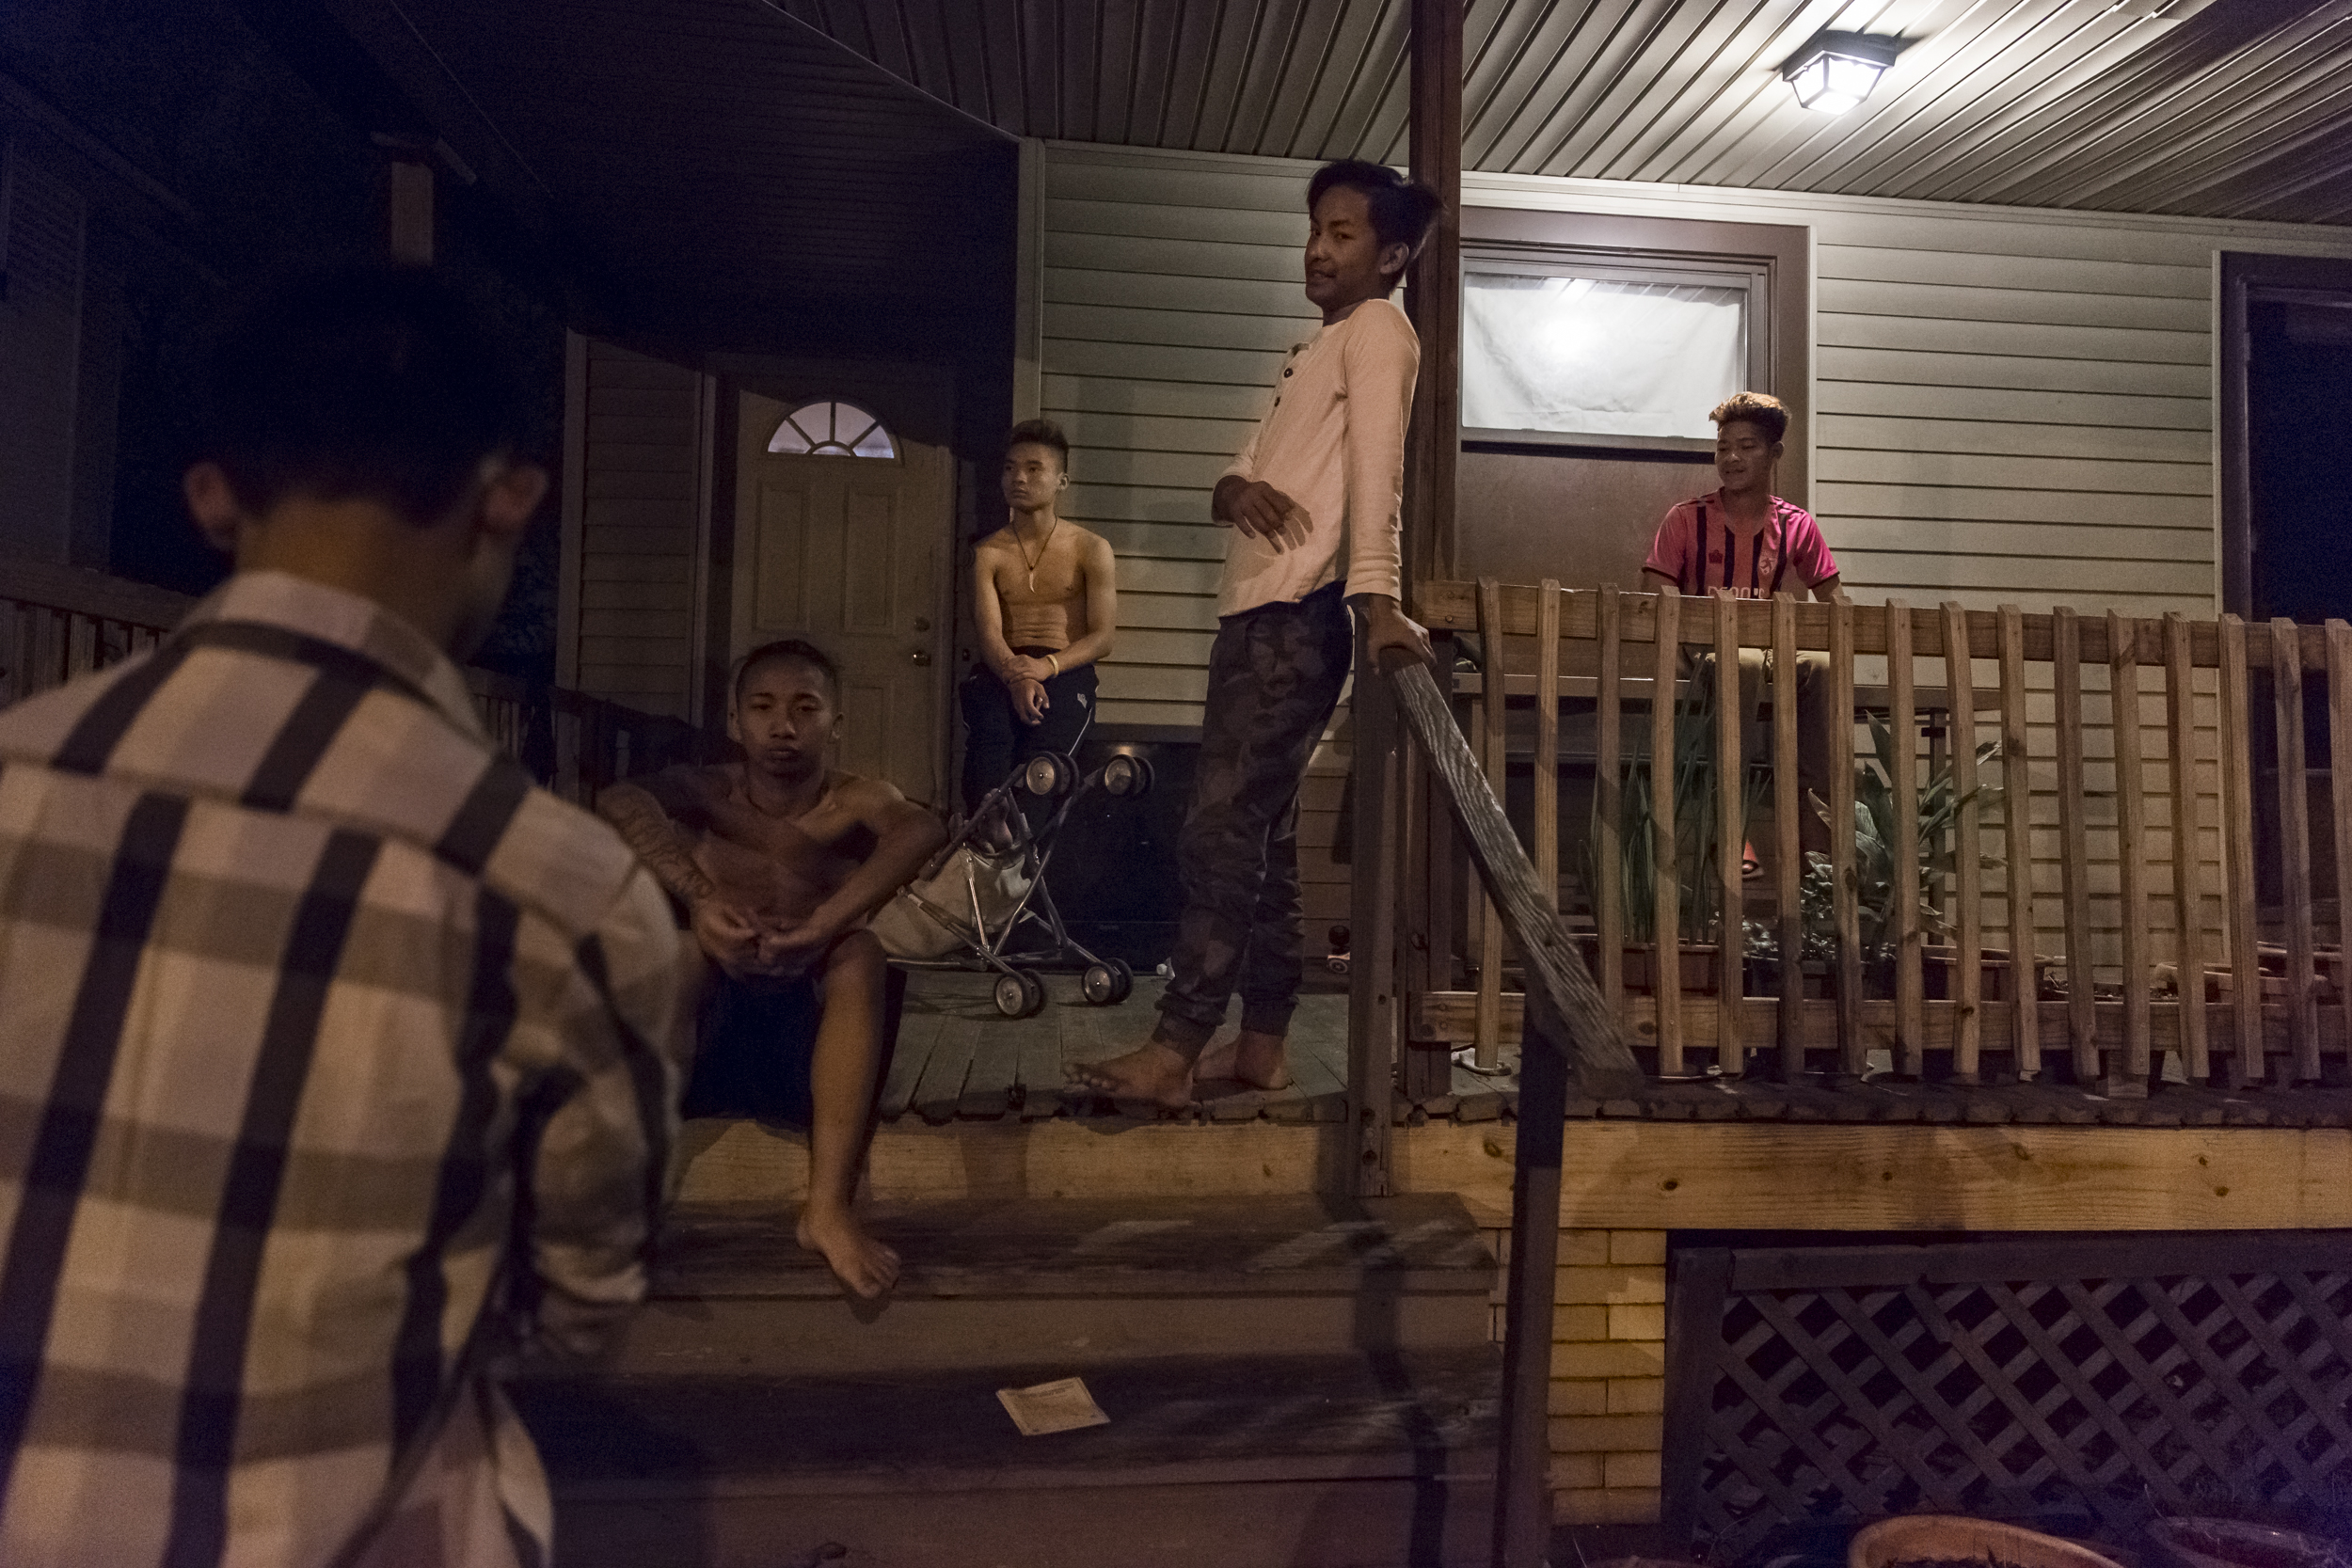 (from left) Ehlerh's Brother The Dah Htoo, Hsar, Joe, Ehlerh, and Hla Ku sit on the porch late at night talking. Although his brother is older, The Dah has strange work hours during the week that make it difficult to make friends, therefore he spends his weekends with Ehlerh and his group of friends. May 9, 2015.